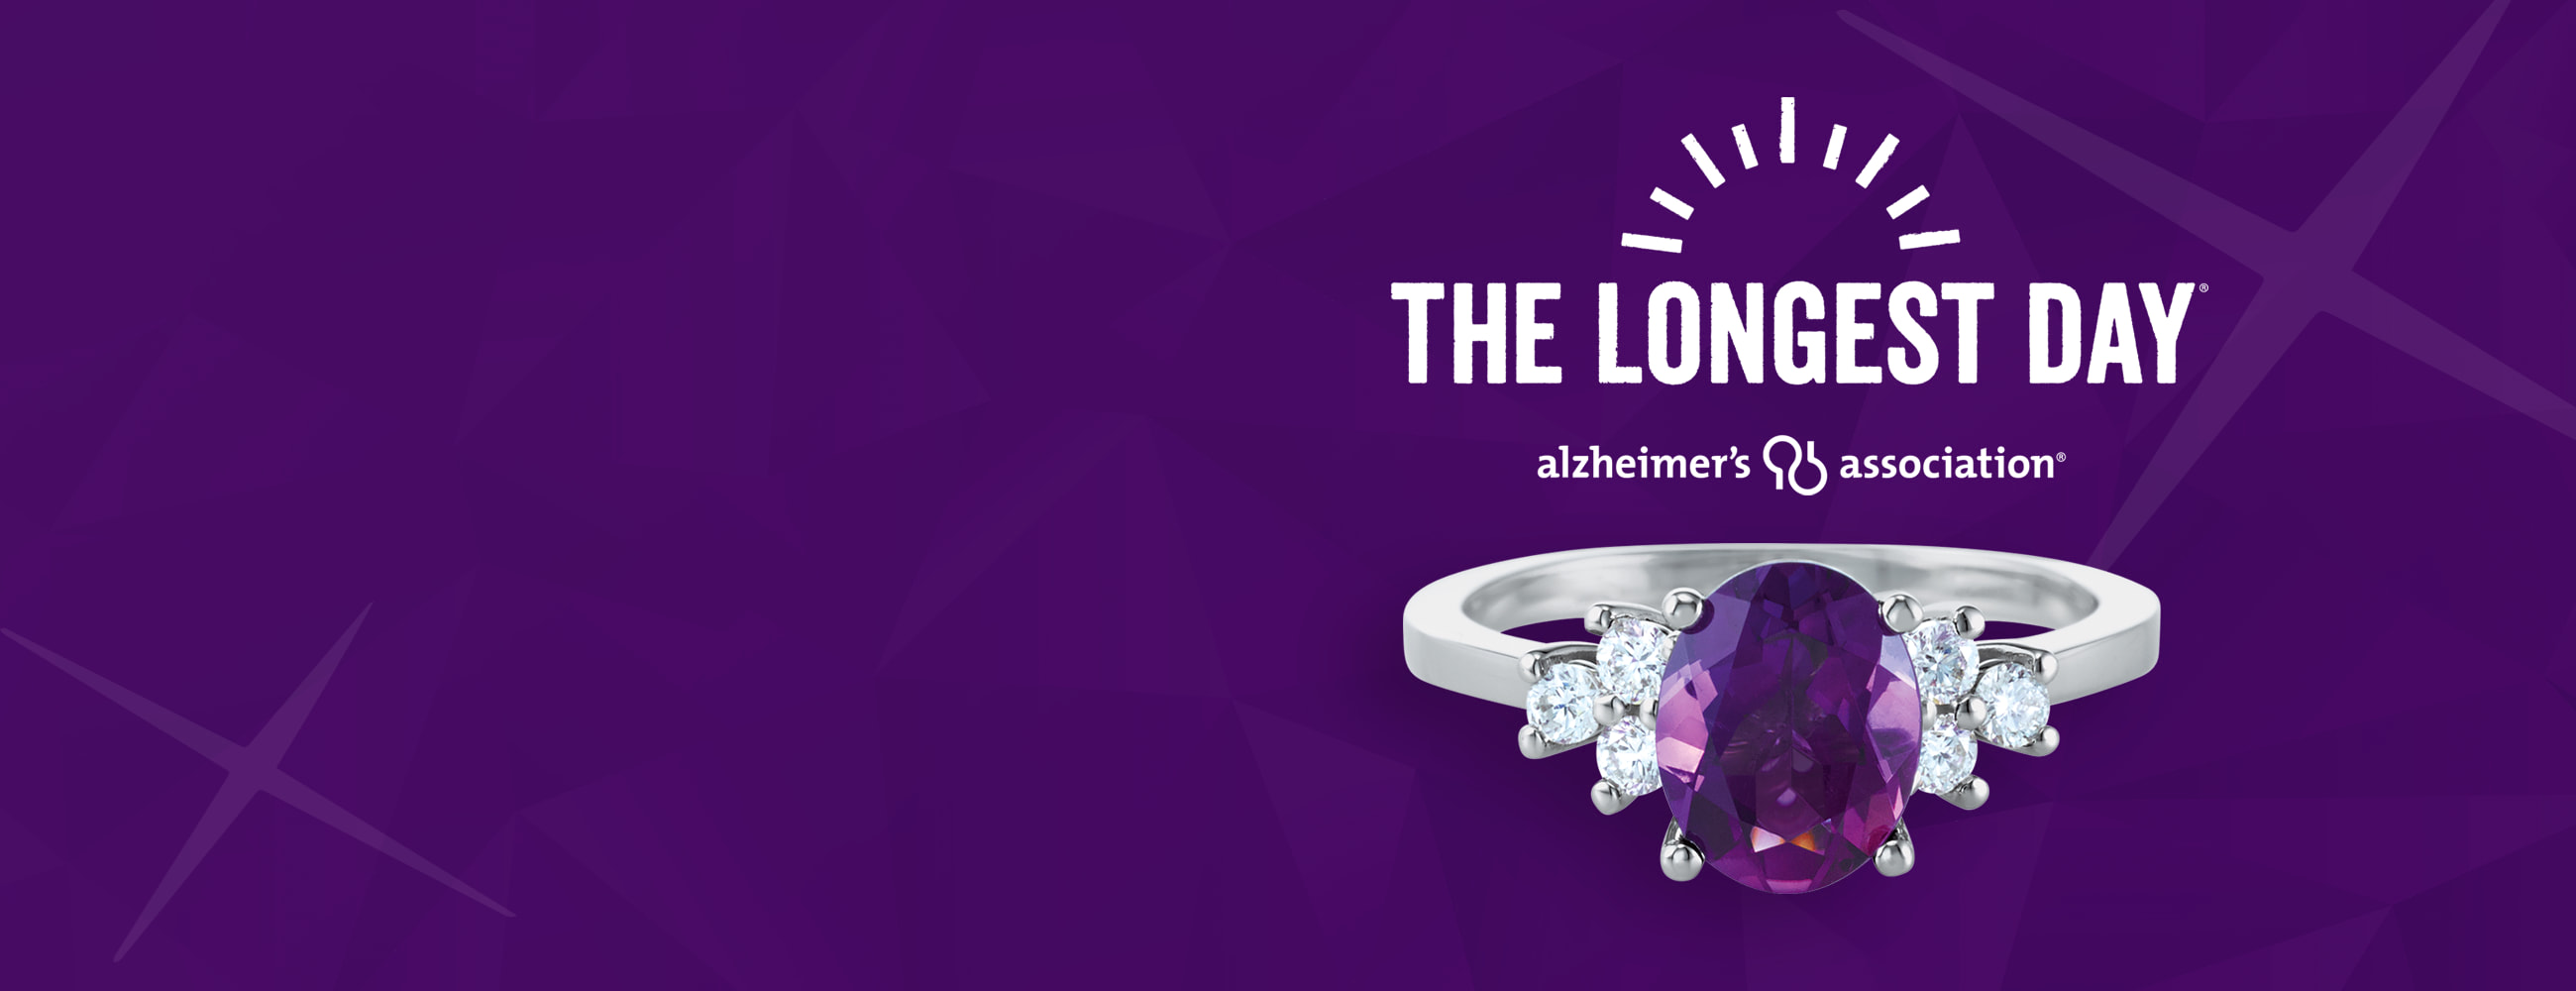 Join us in the fight against Alzheimer's